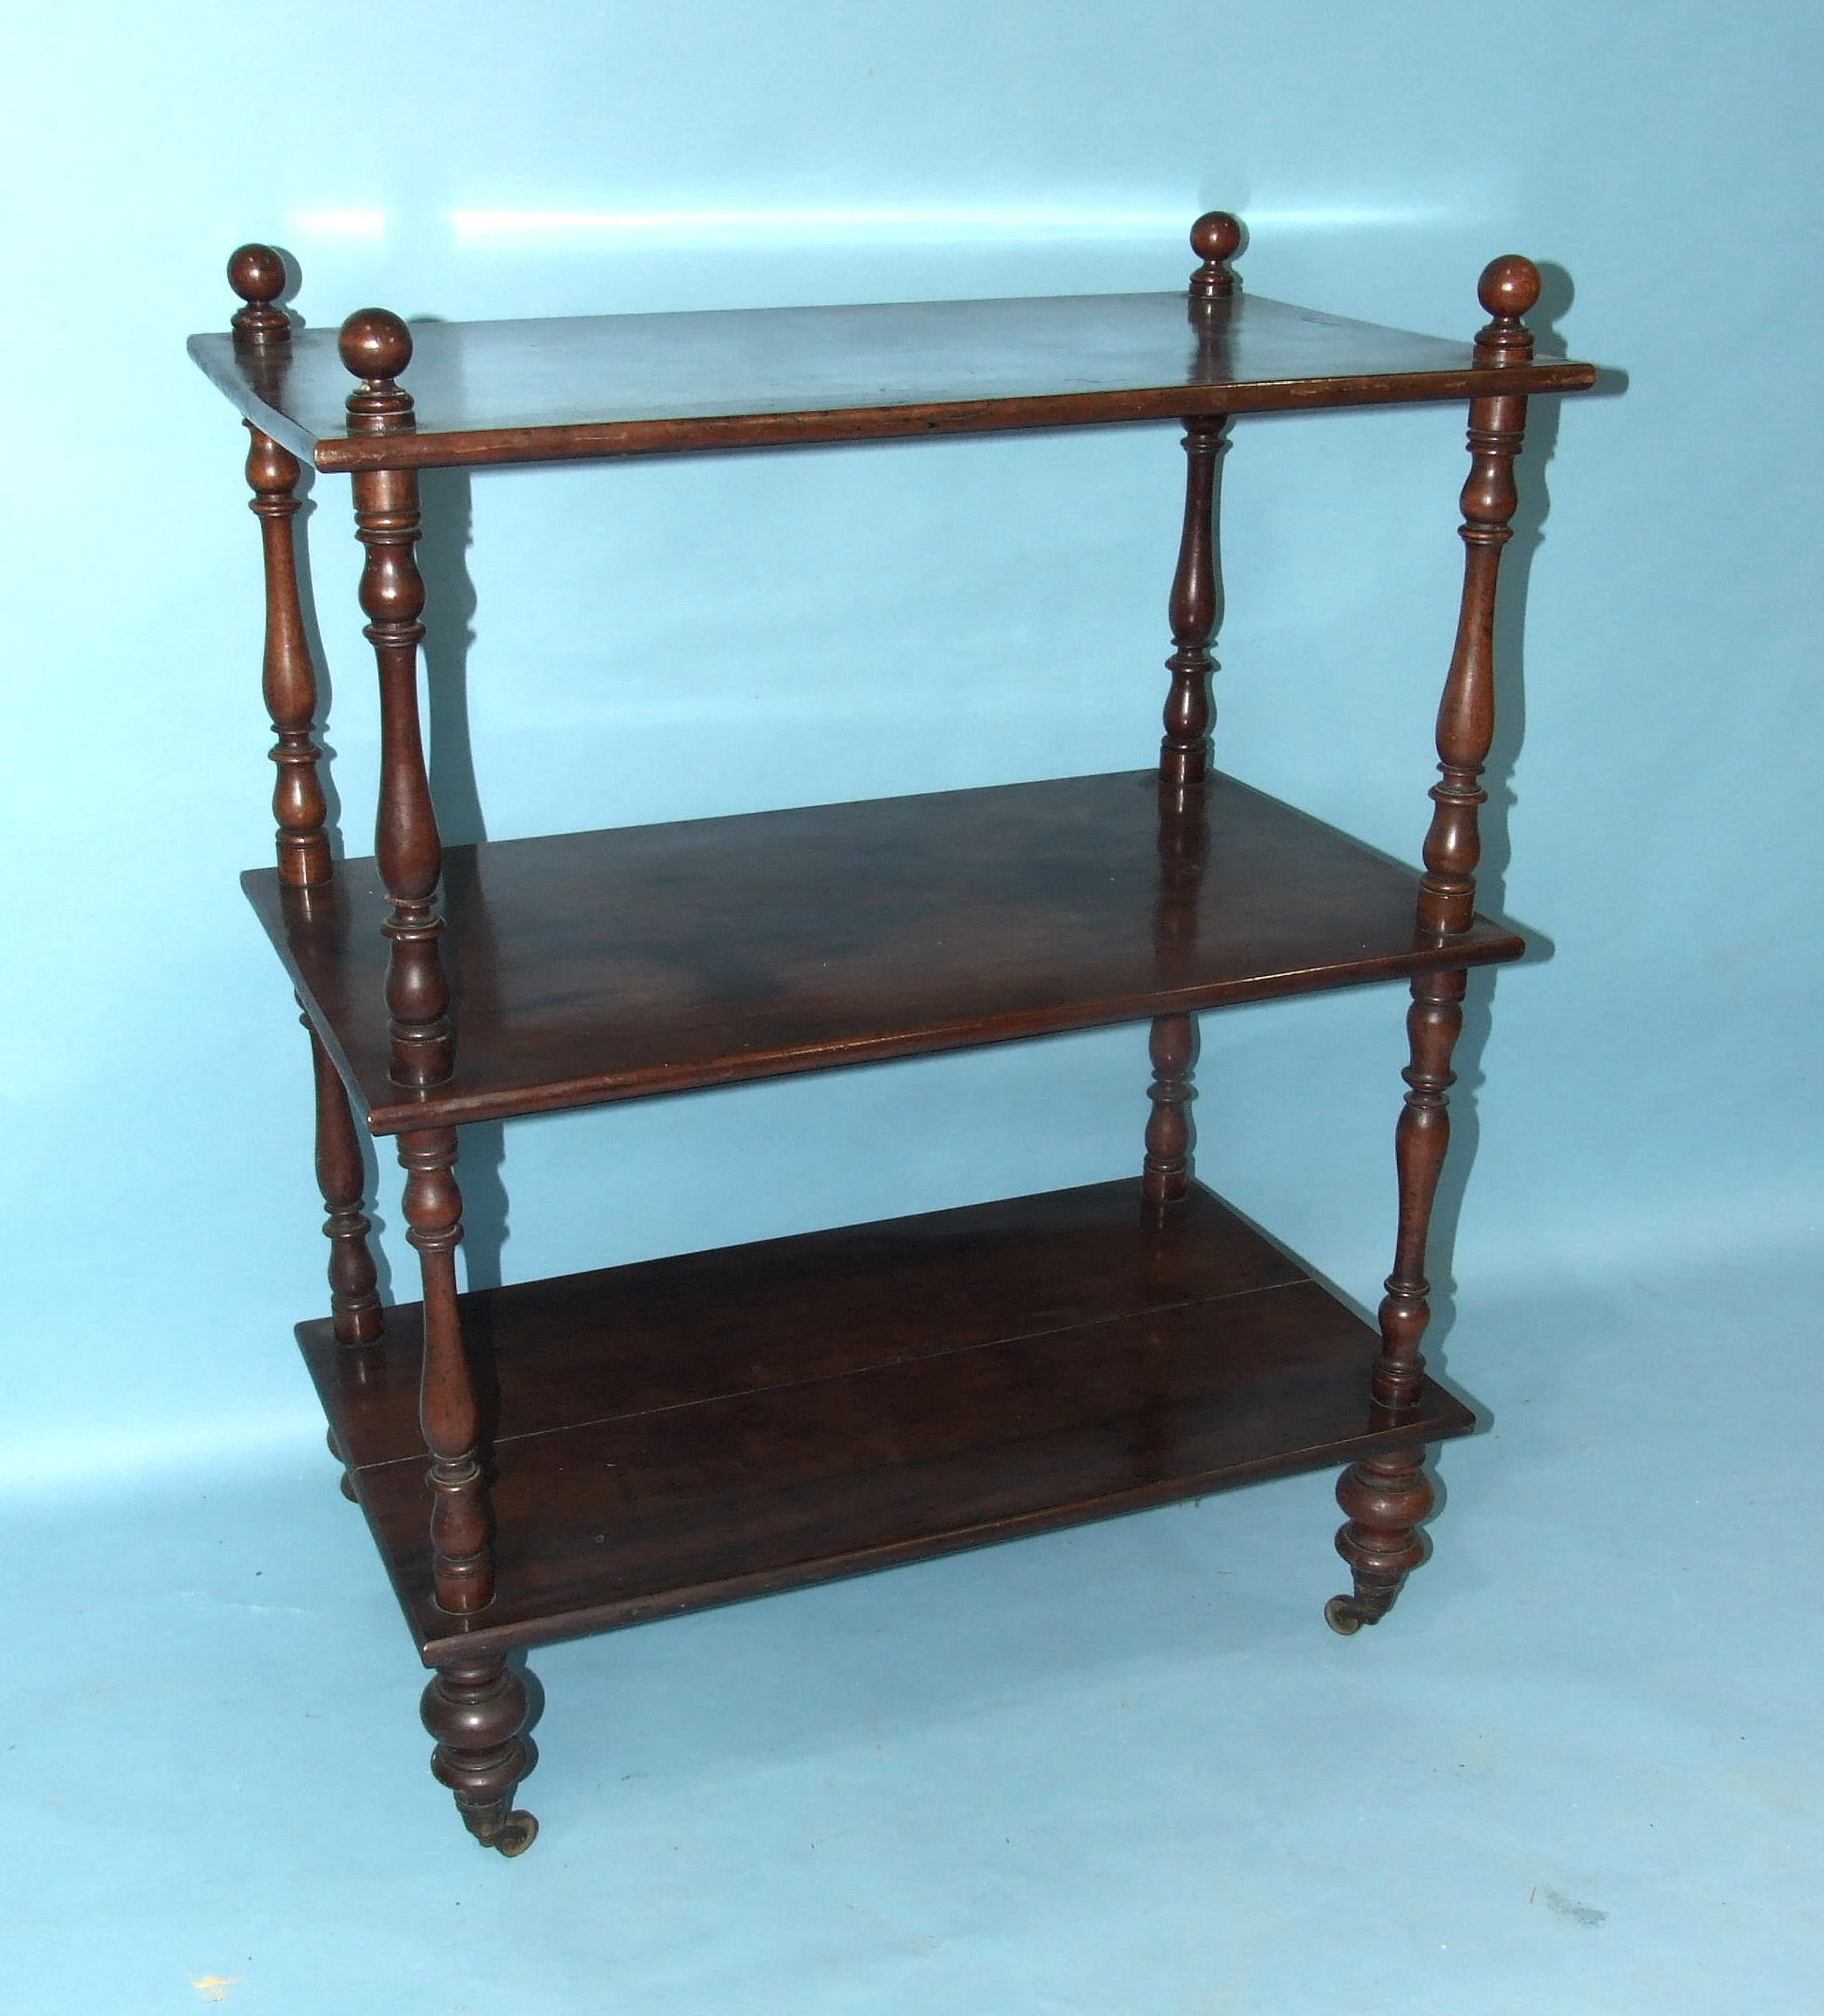 A Victorian mahogany three-tier whatnot on turned legs with castors, 73cm wide, 96cm high, a